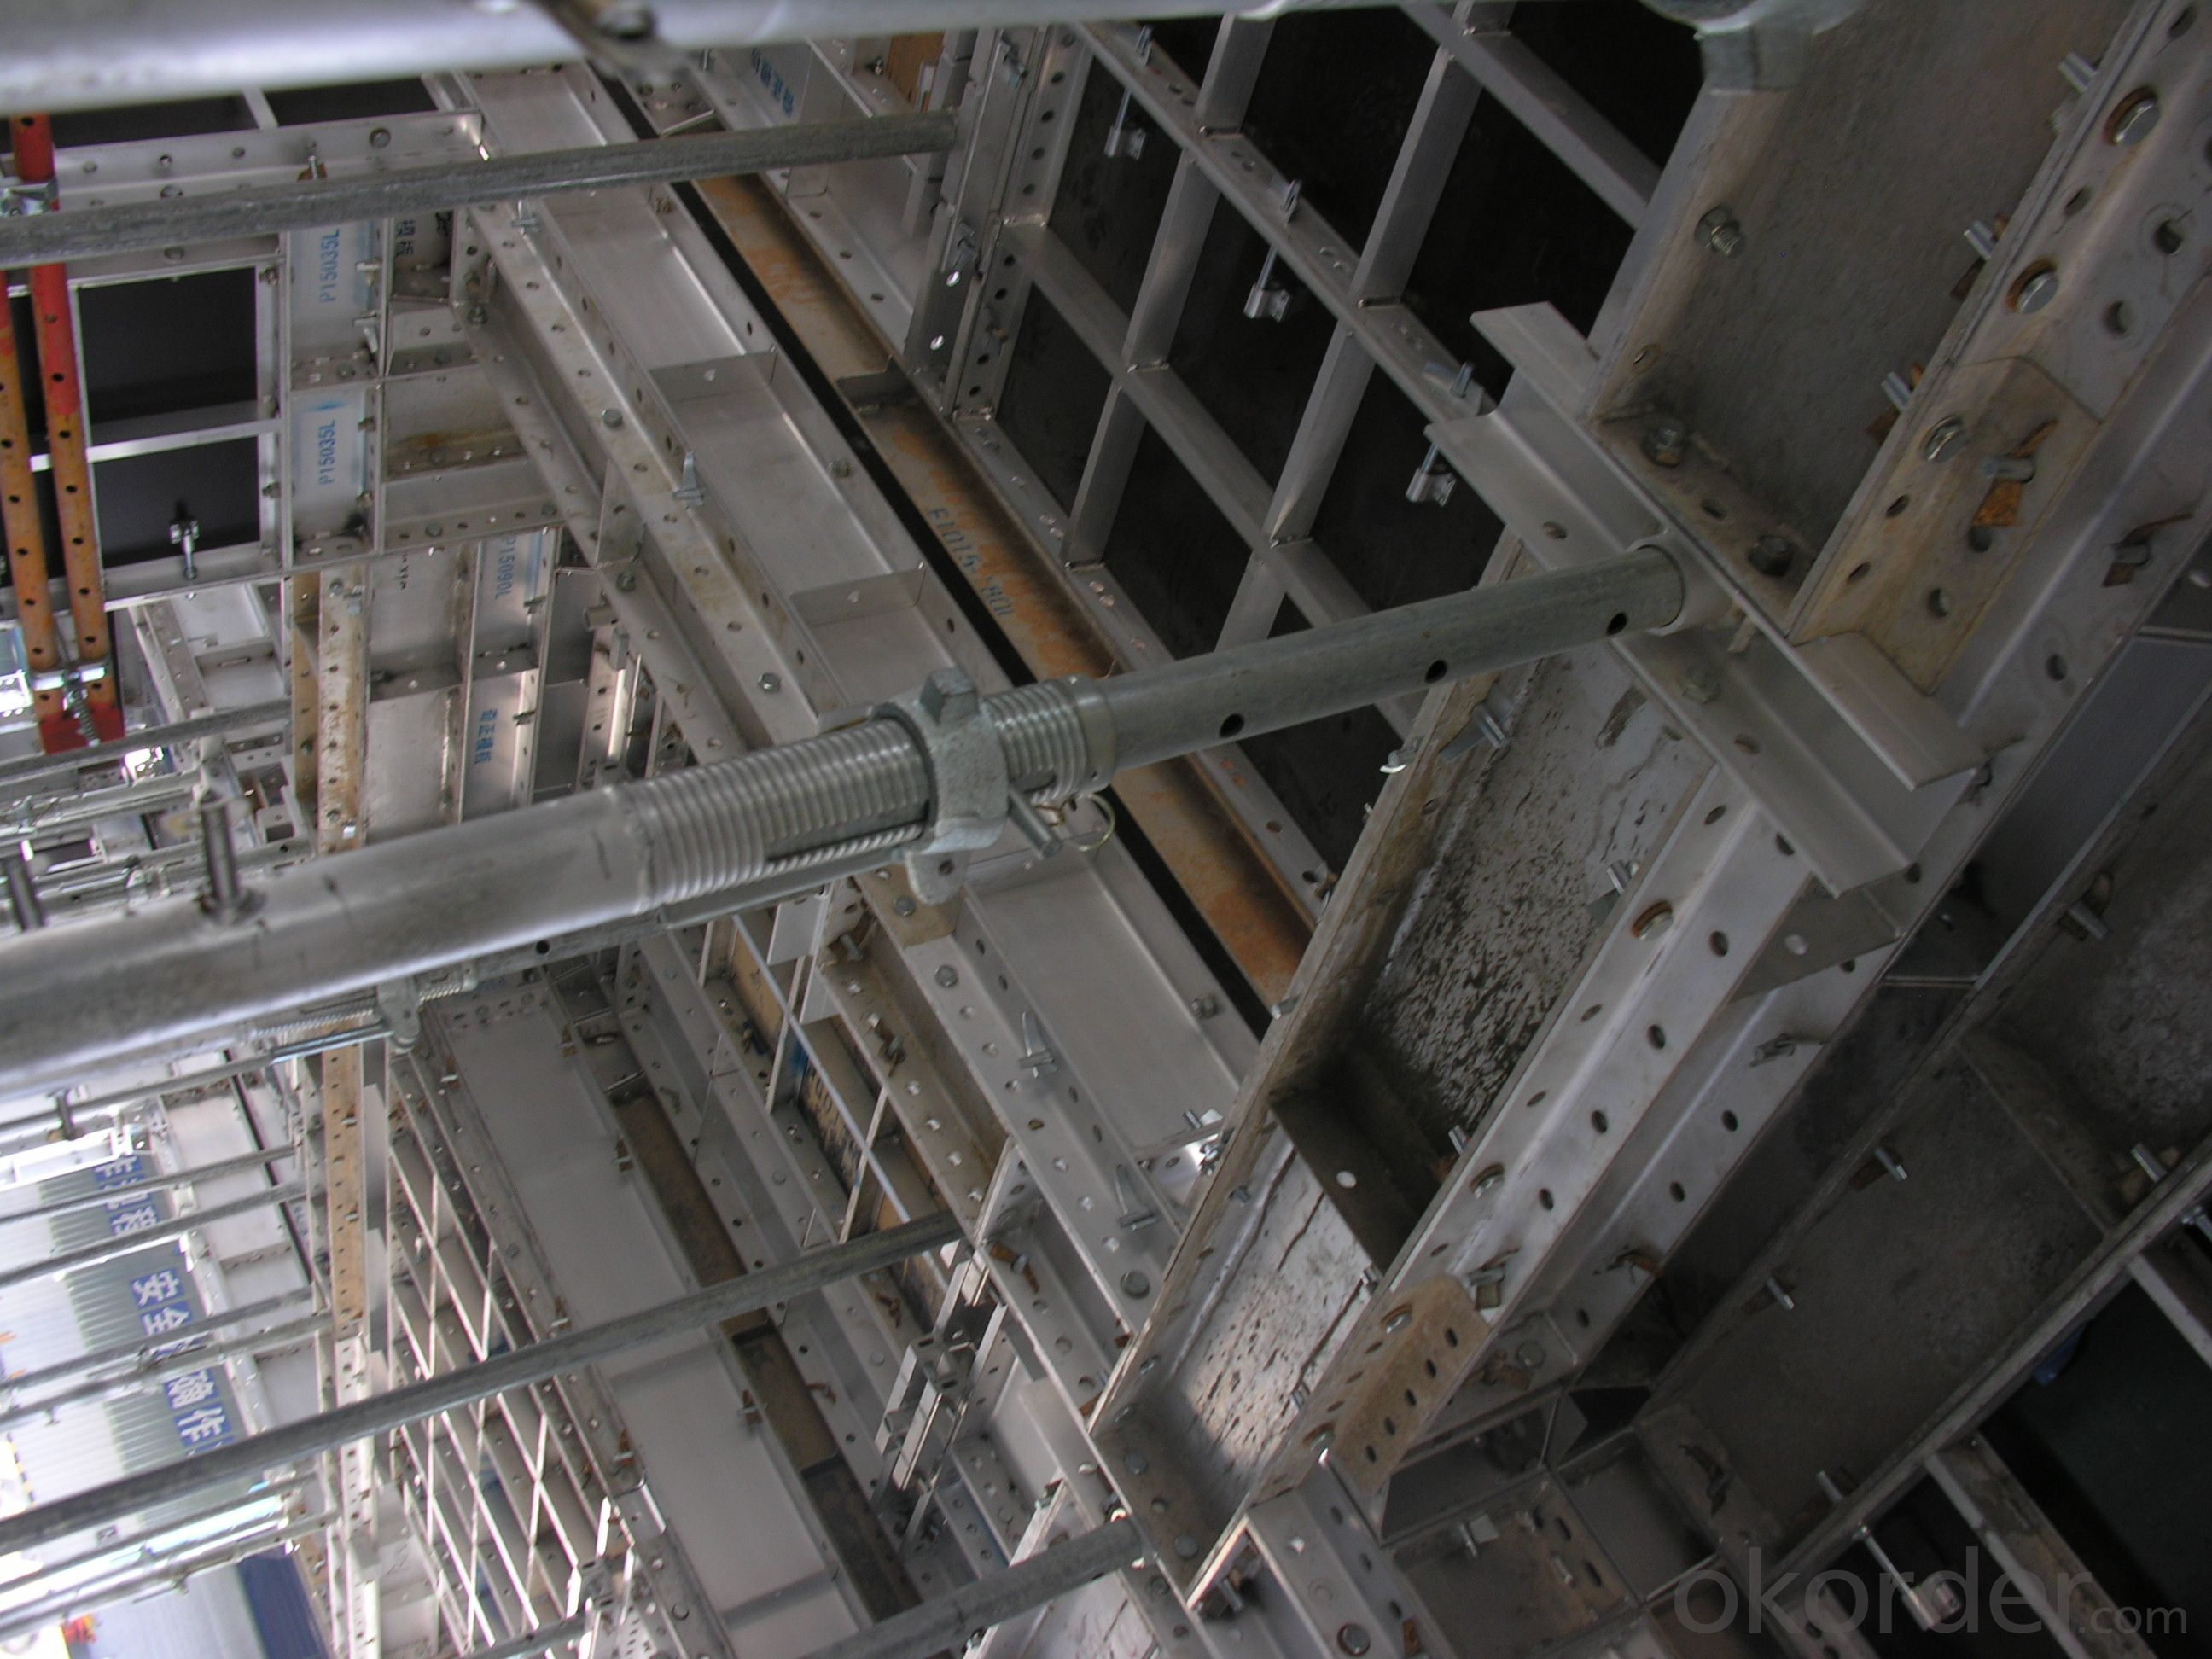 WHOLE ALUMINUM FORMWORK SYSTEMS and SCAFFOLDINGS FOR COLUMN CONSTRUCTION